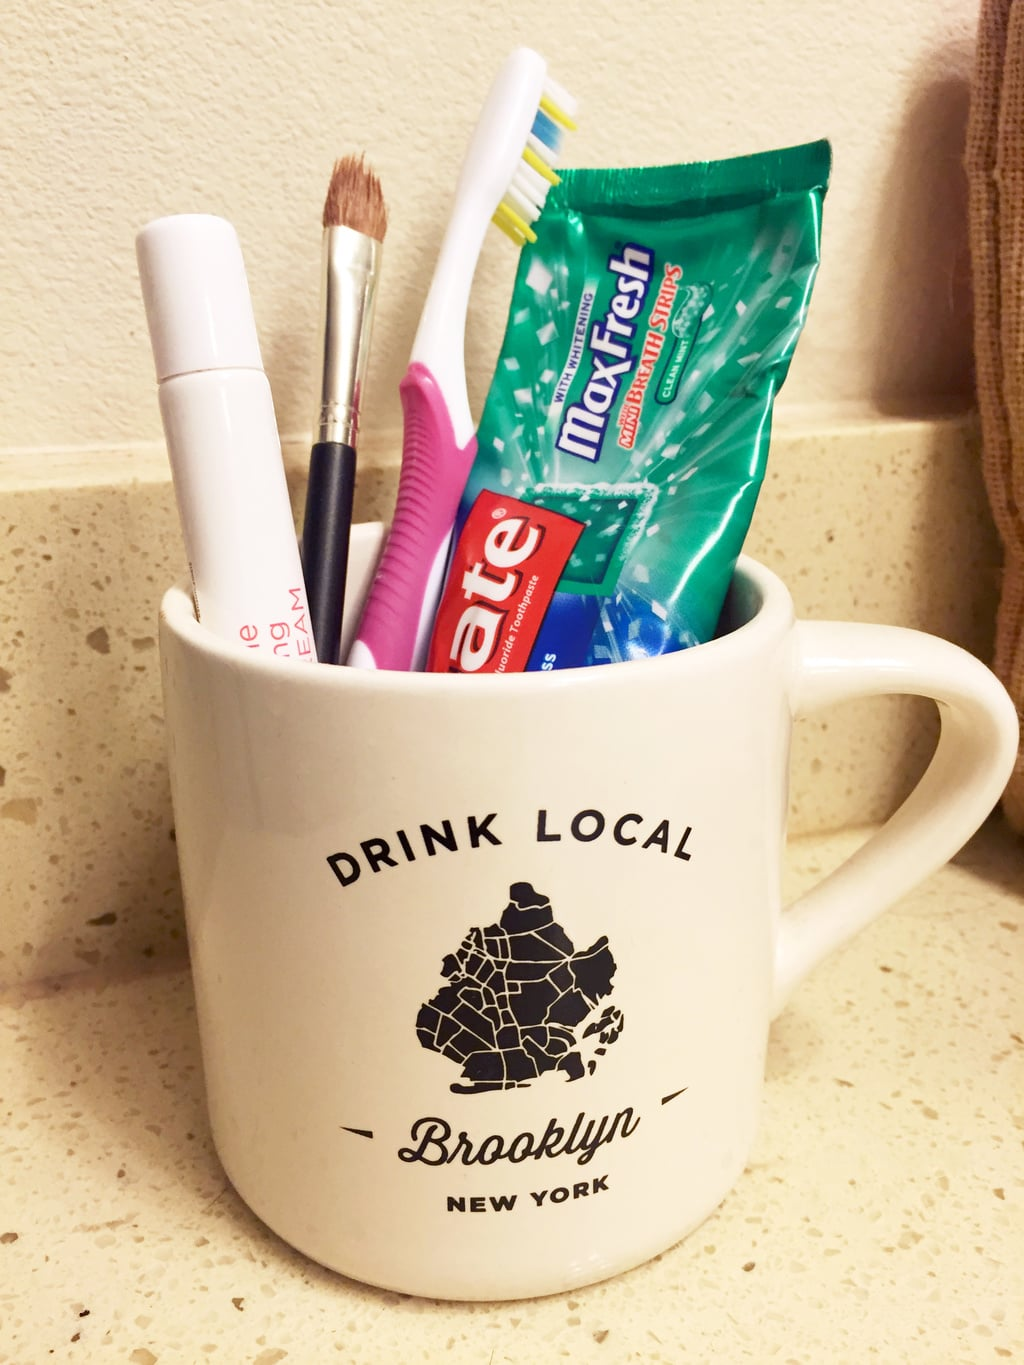 Brooklyn mug used to hold toothbrush and toothpaste in the bathroom